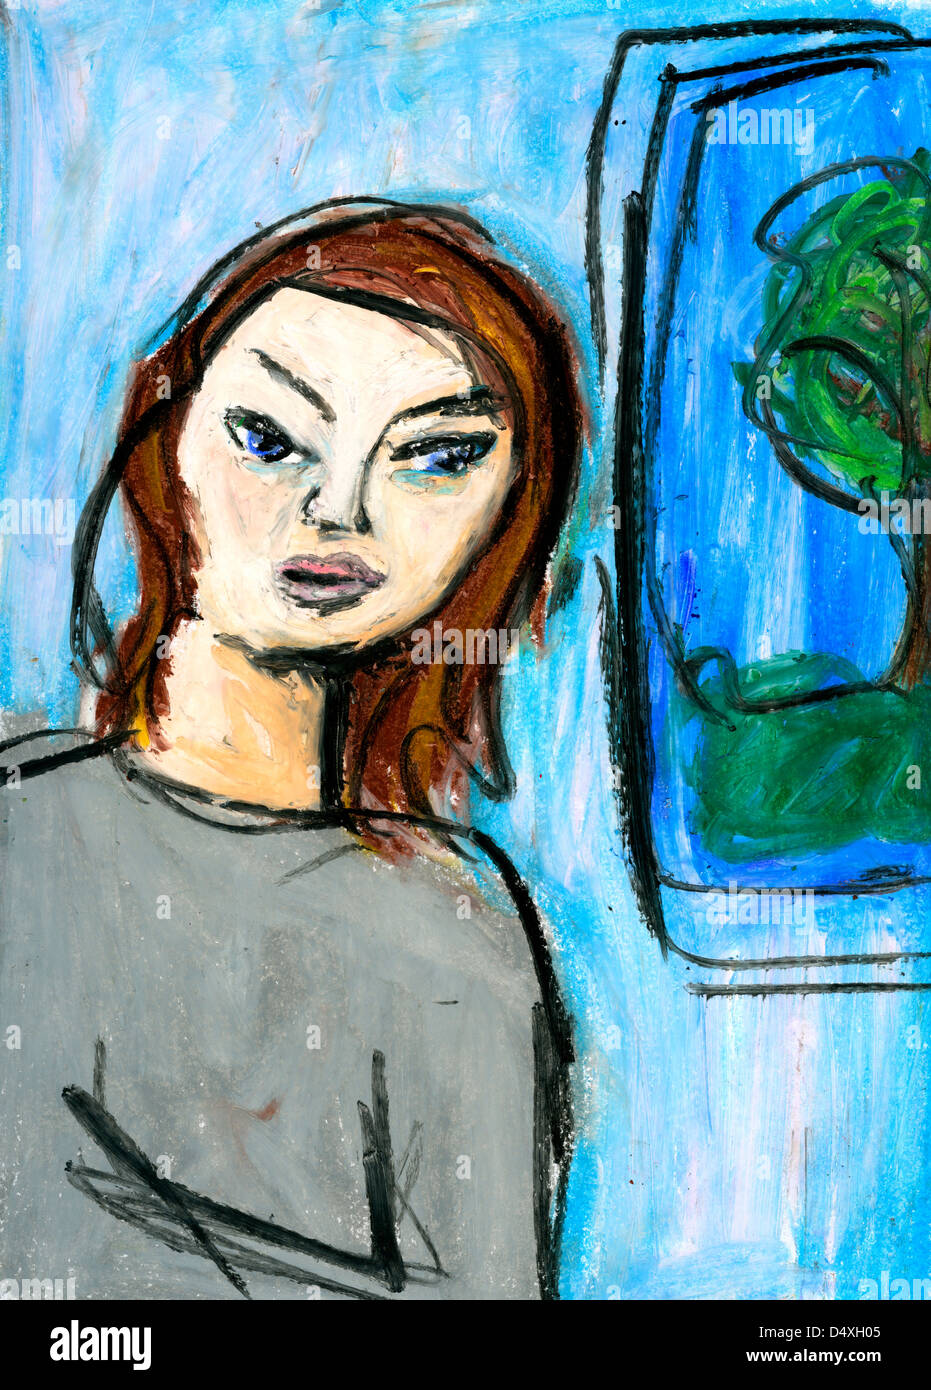 Depressed woman being thoughtful. - Stock Image